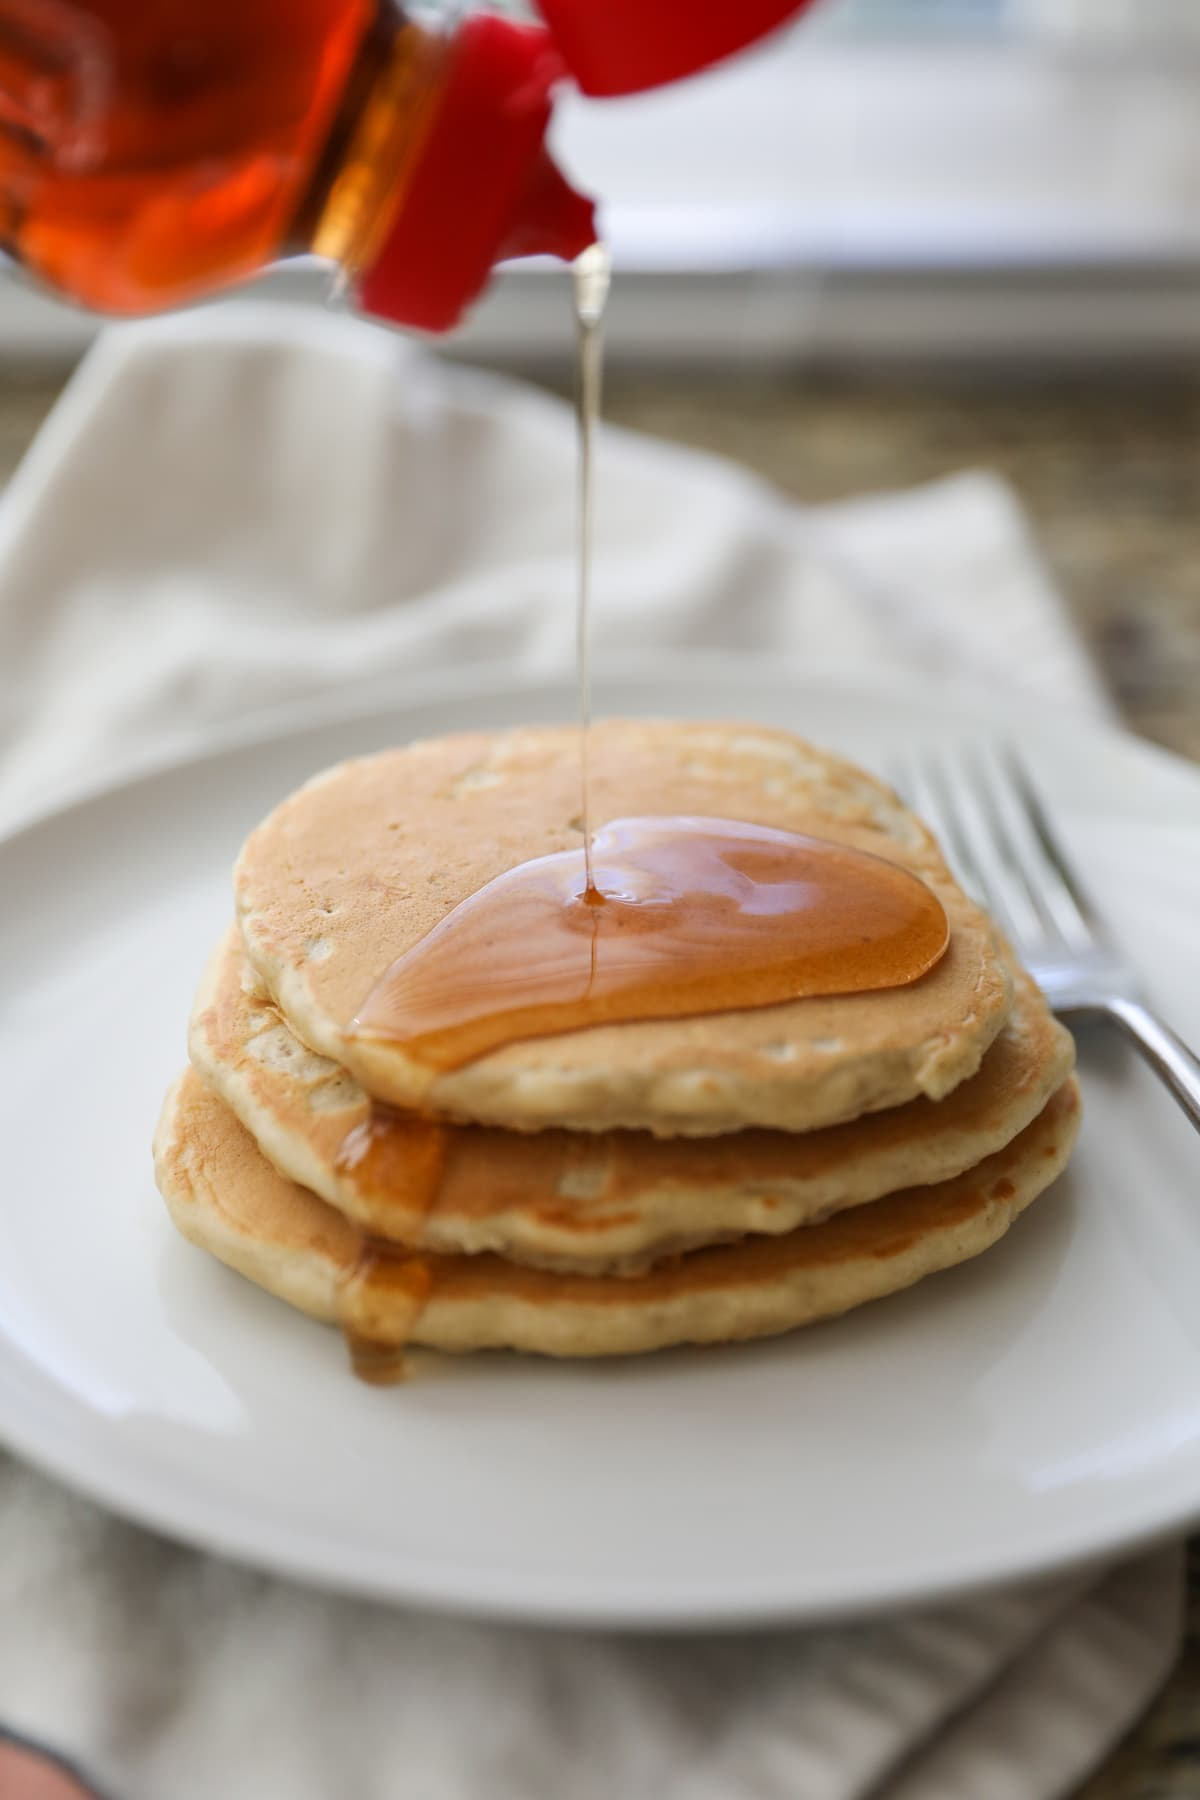 pouring syrup on oatmeal pancakes